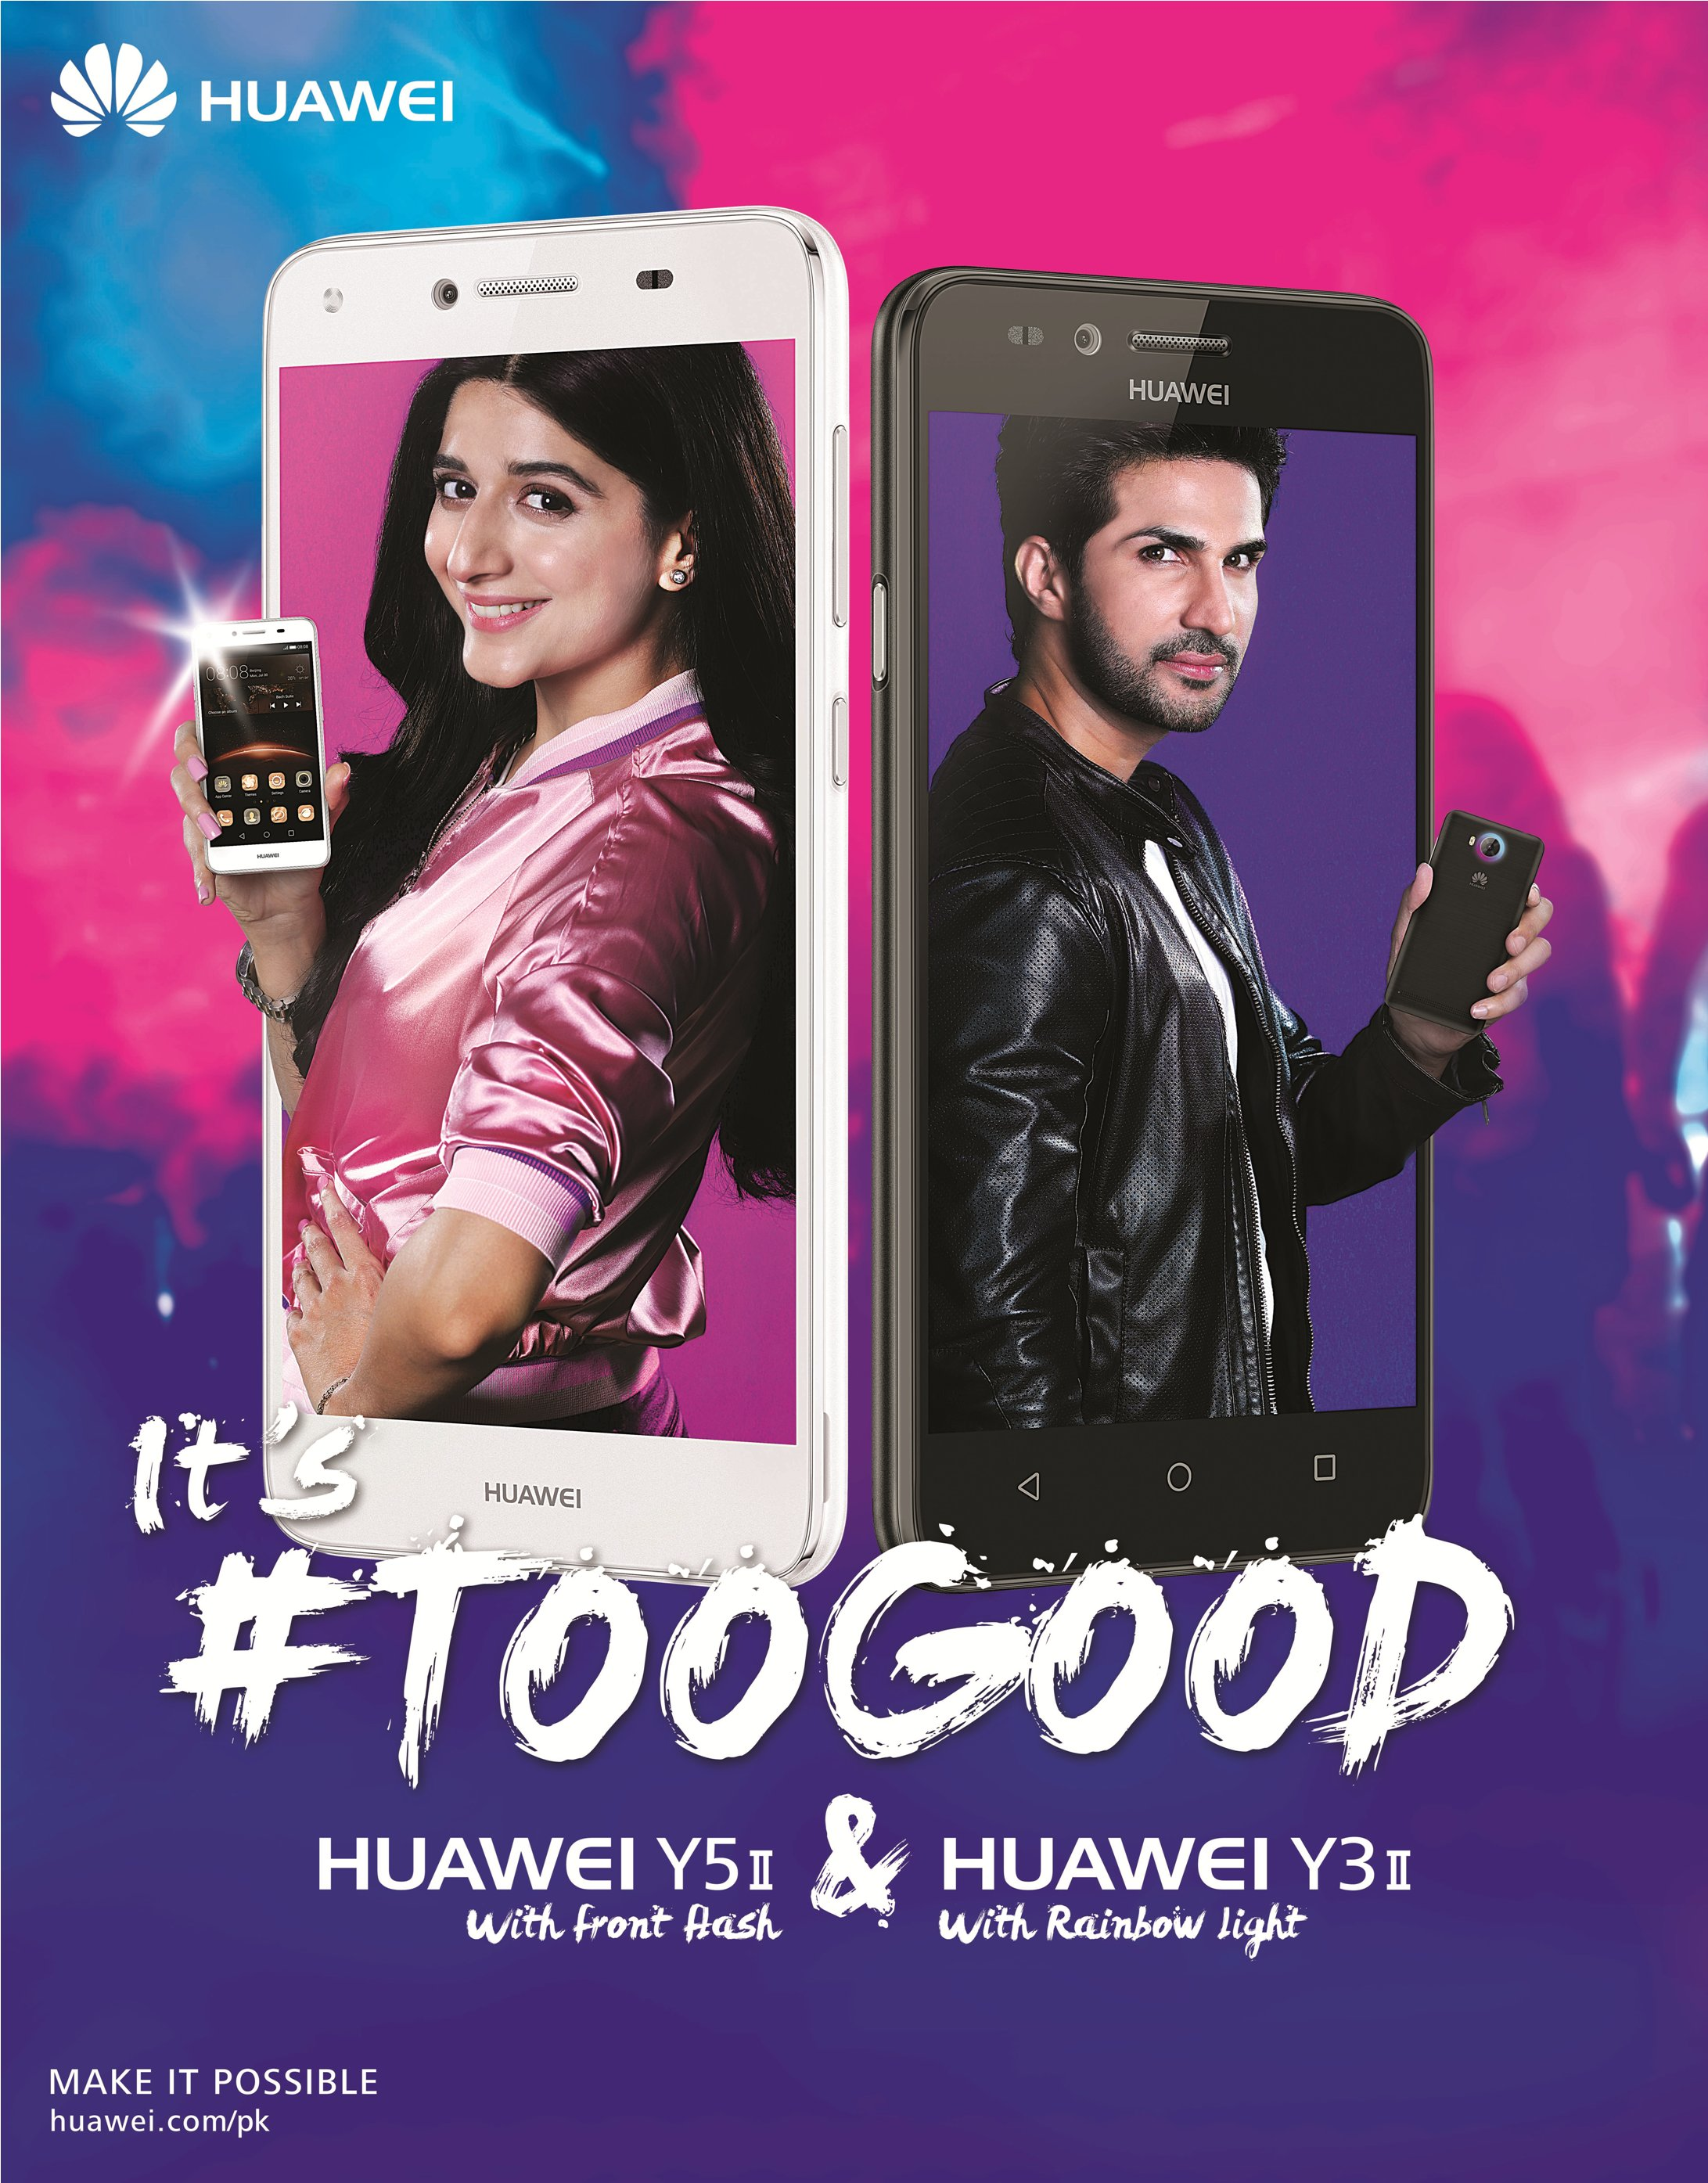 Presenting Huawei Y5 II with front flash and Huawei Y3 II with rainbow light#TooGood